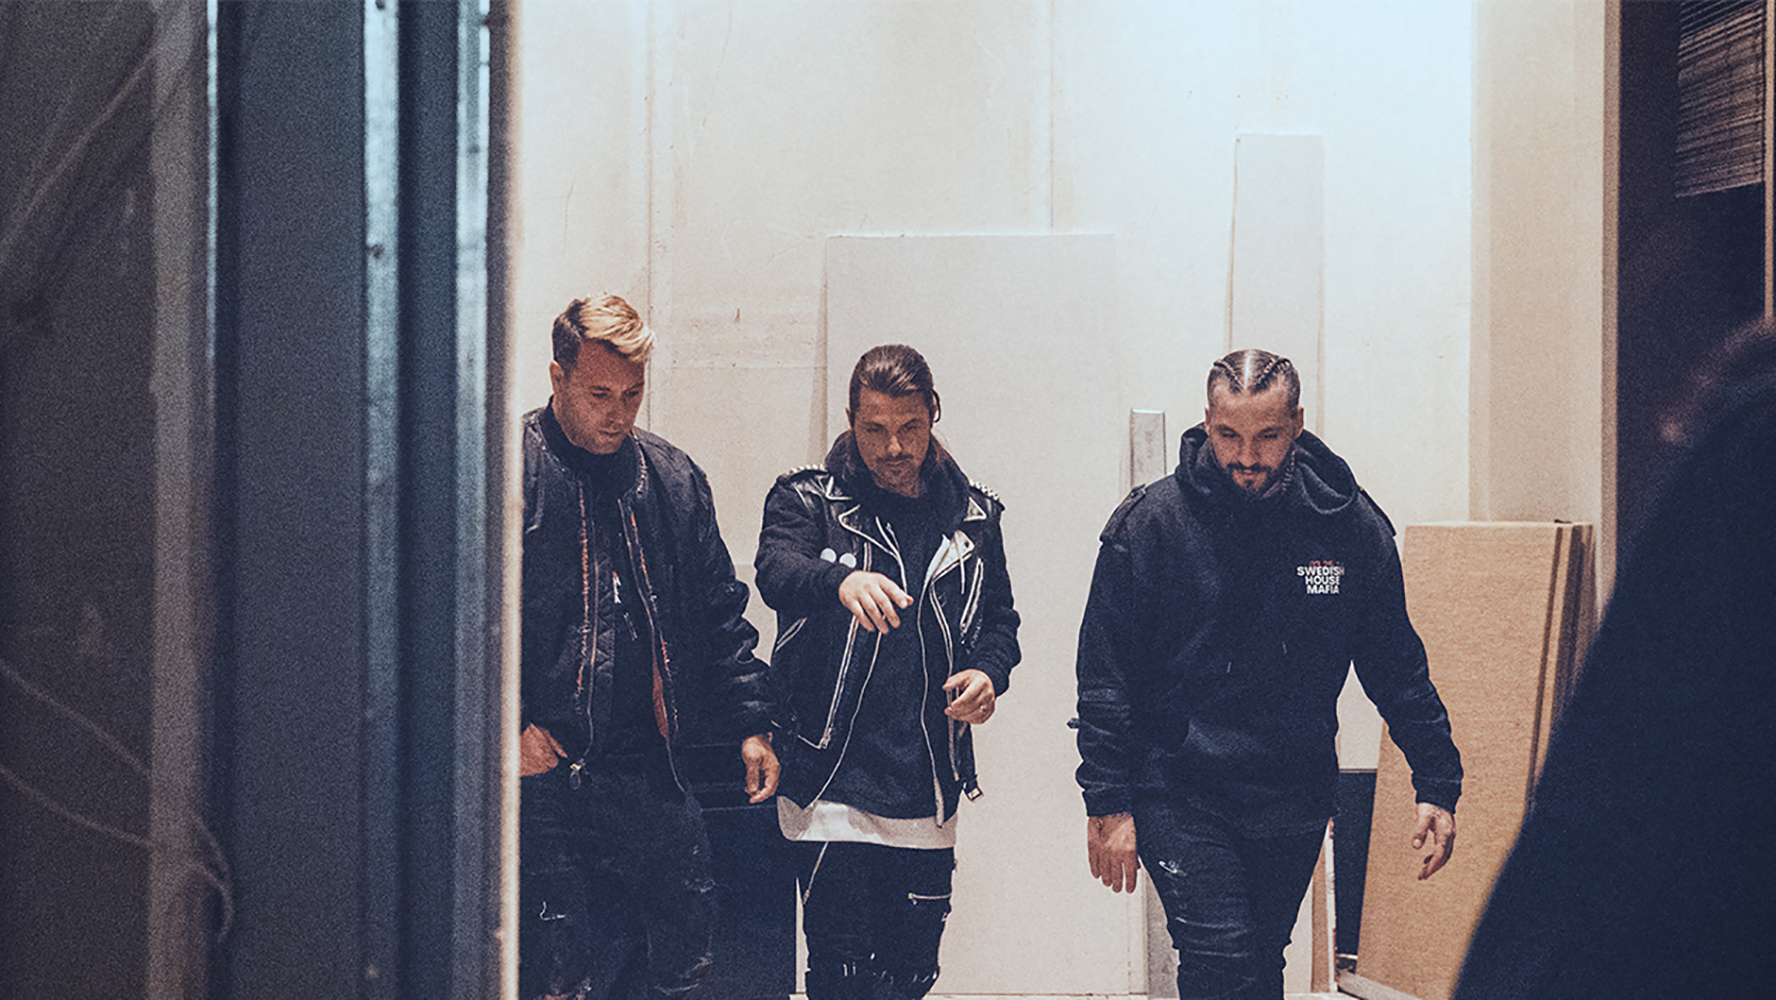 1 Year Ago Today: Swedish House Mafia Returned!